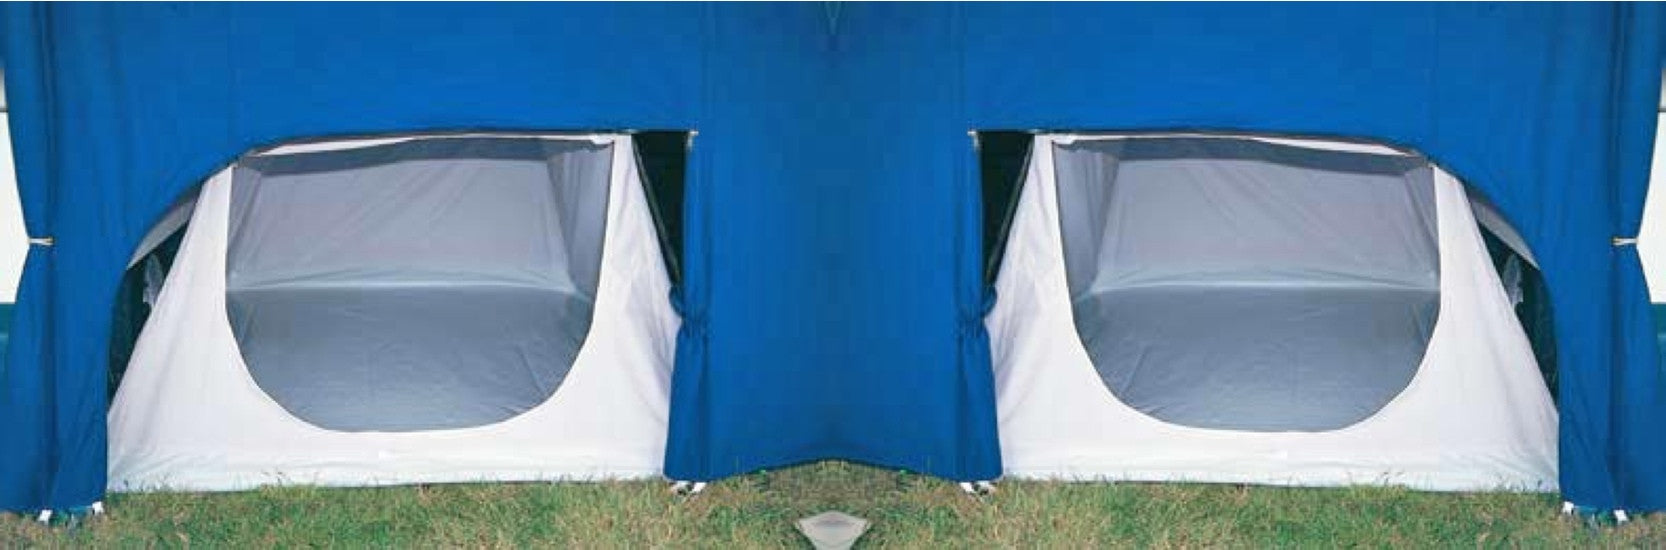 Sunncamp Trailer Tent Underbed Inner Tent Tamworth Camping